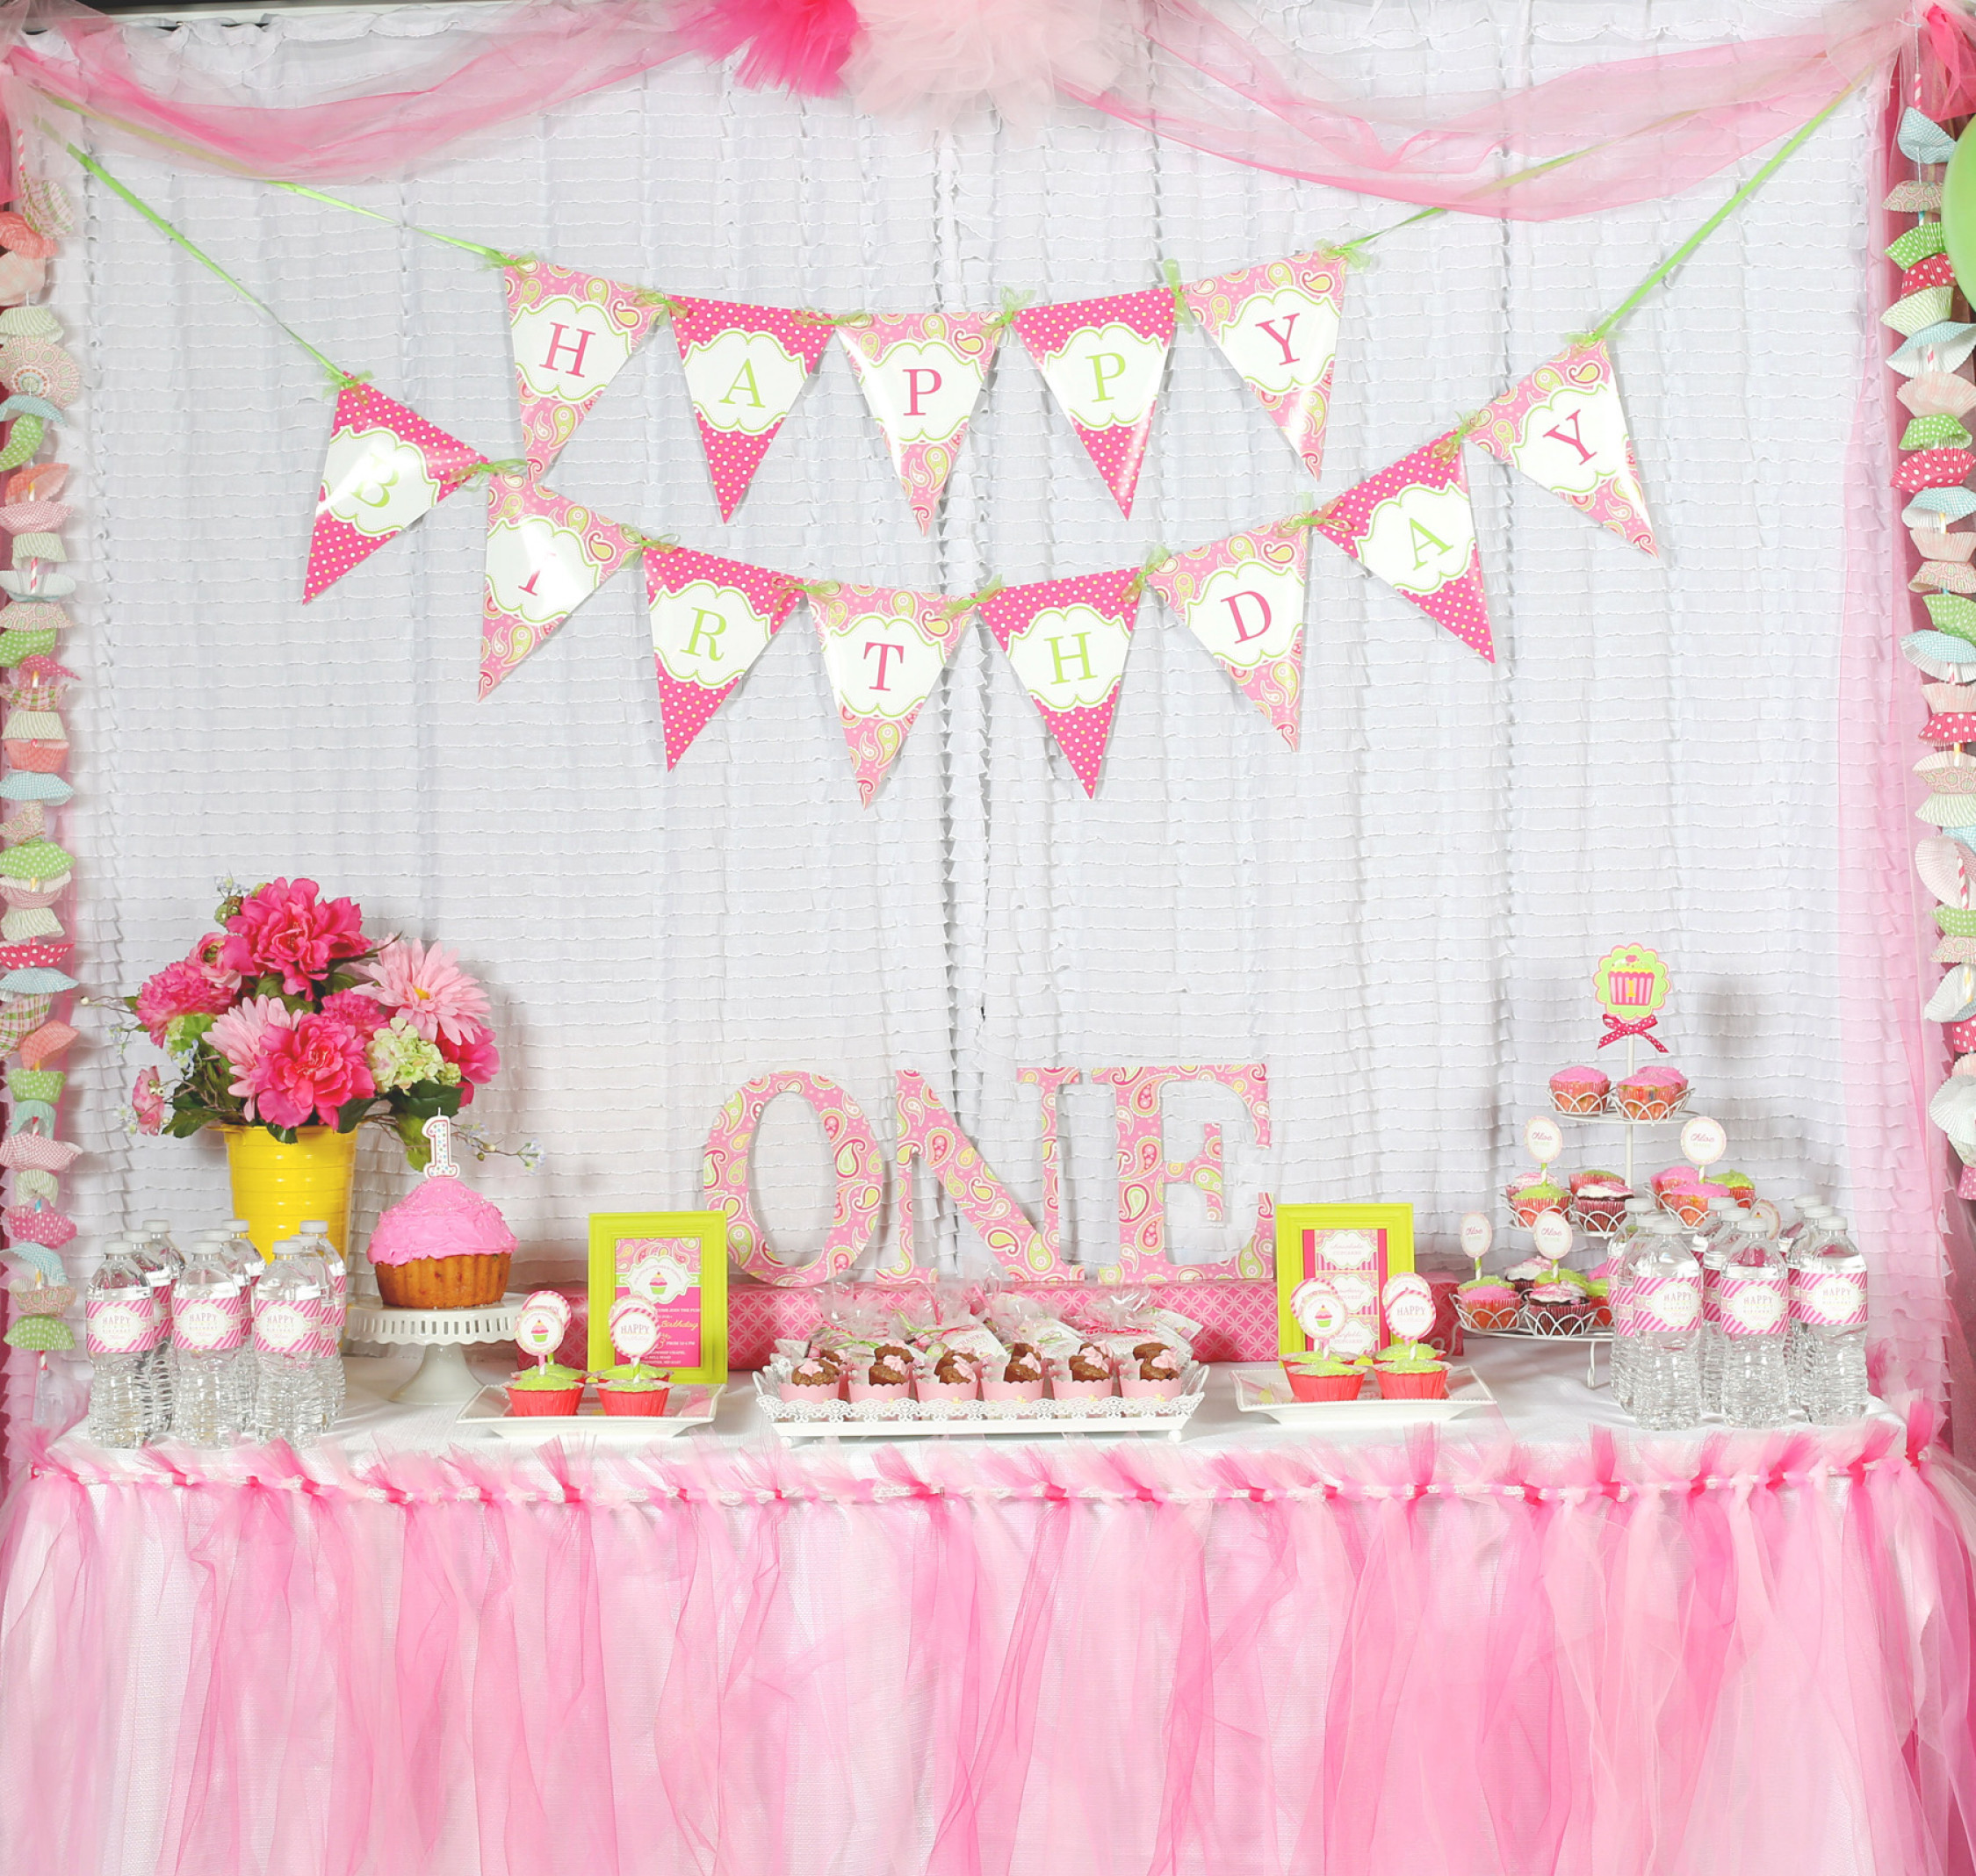 Best ideas about First Birthday Party Themes . Save or Pin A Cupcake Themed 1st Birthday party with Paisley and Polka Now.